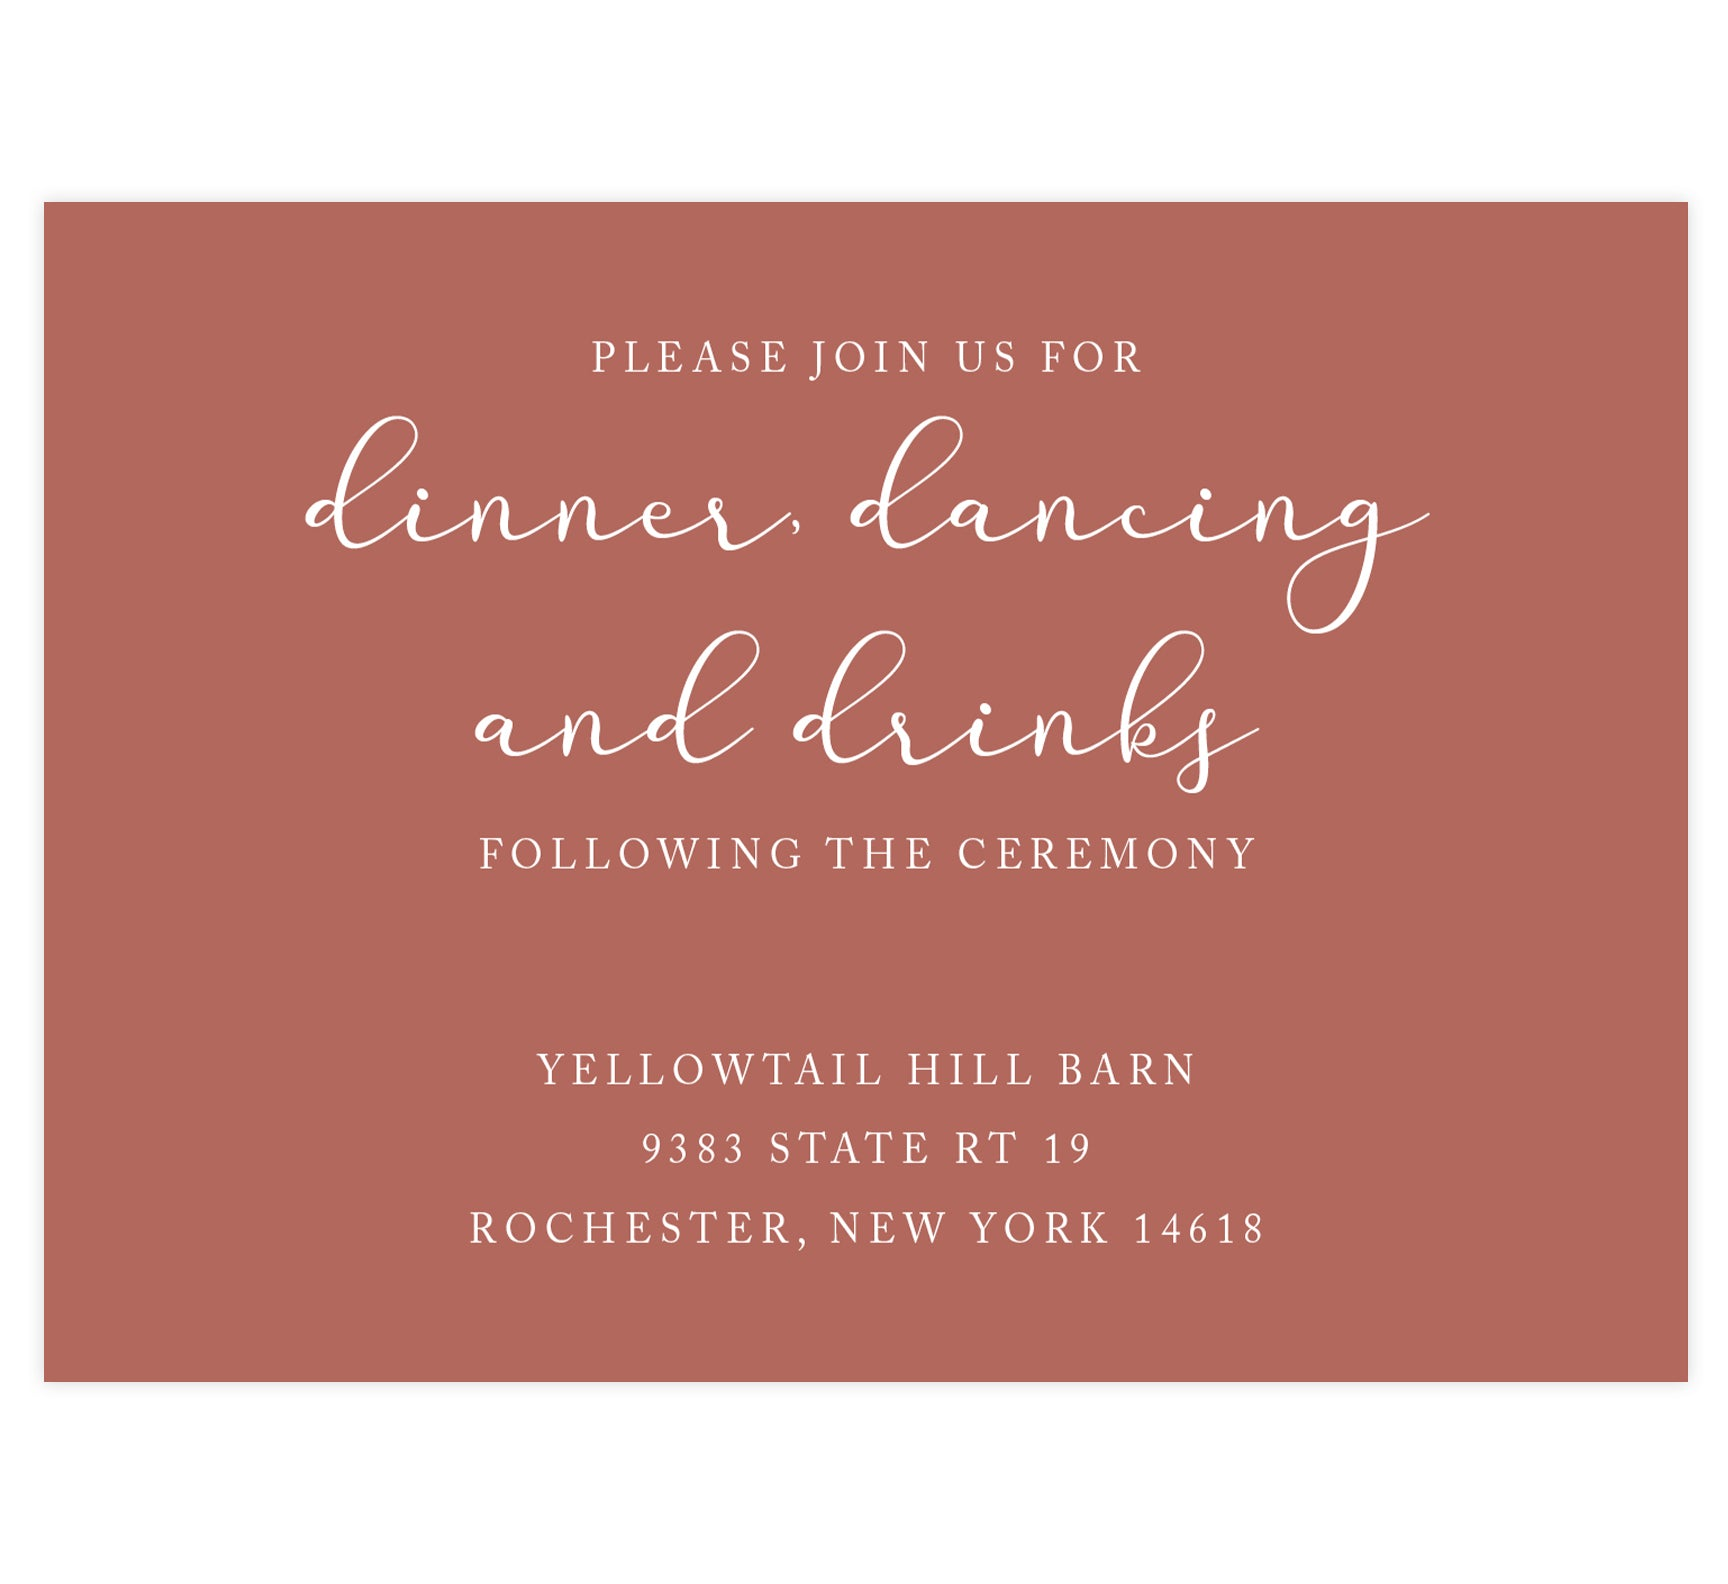 Romantic Pinks wedding reception card; light rust colored background with white text